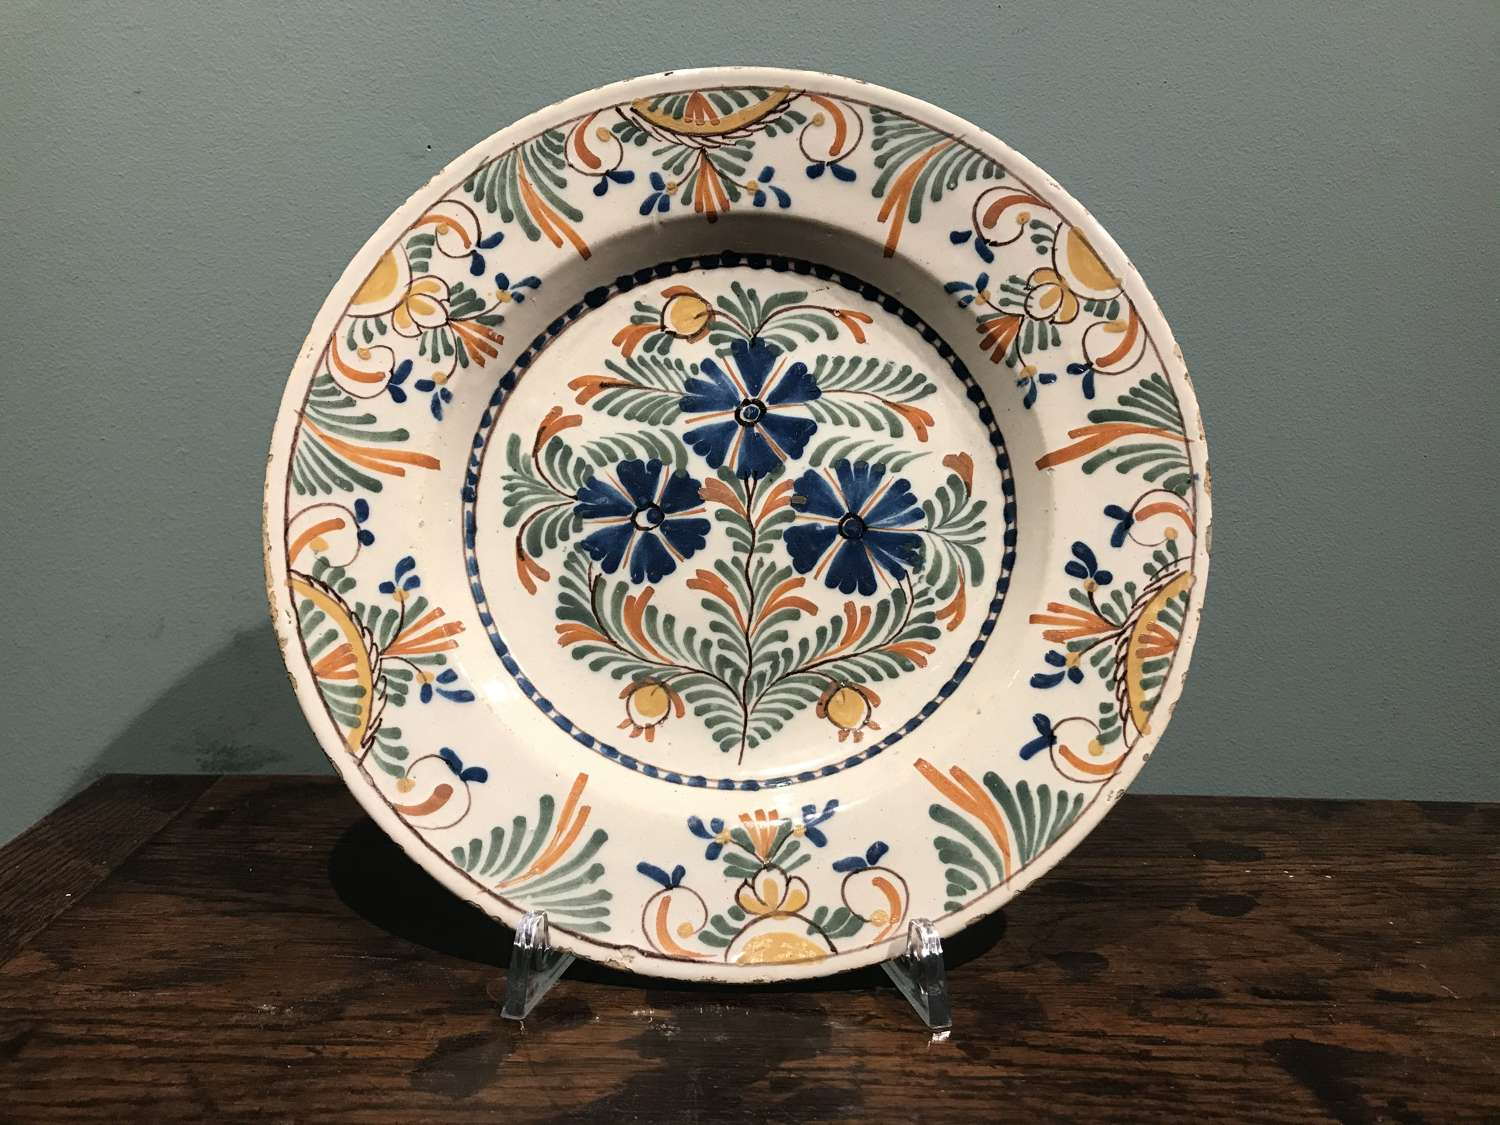 A mid 18th c. Dutch Delft polychrome plate